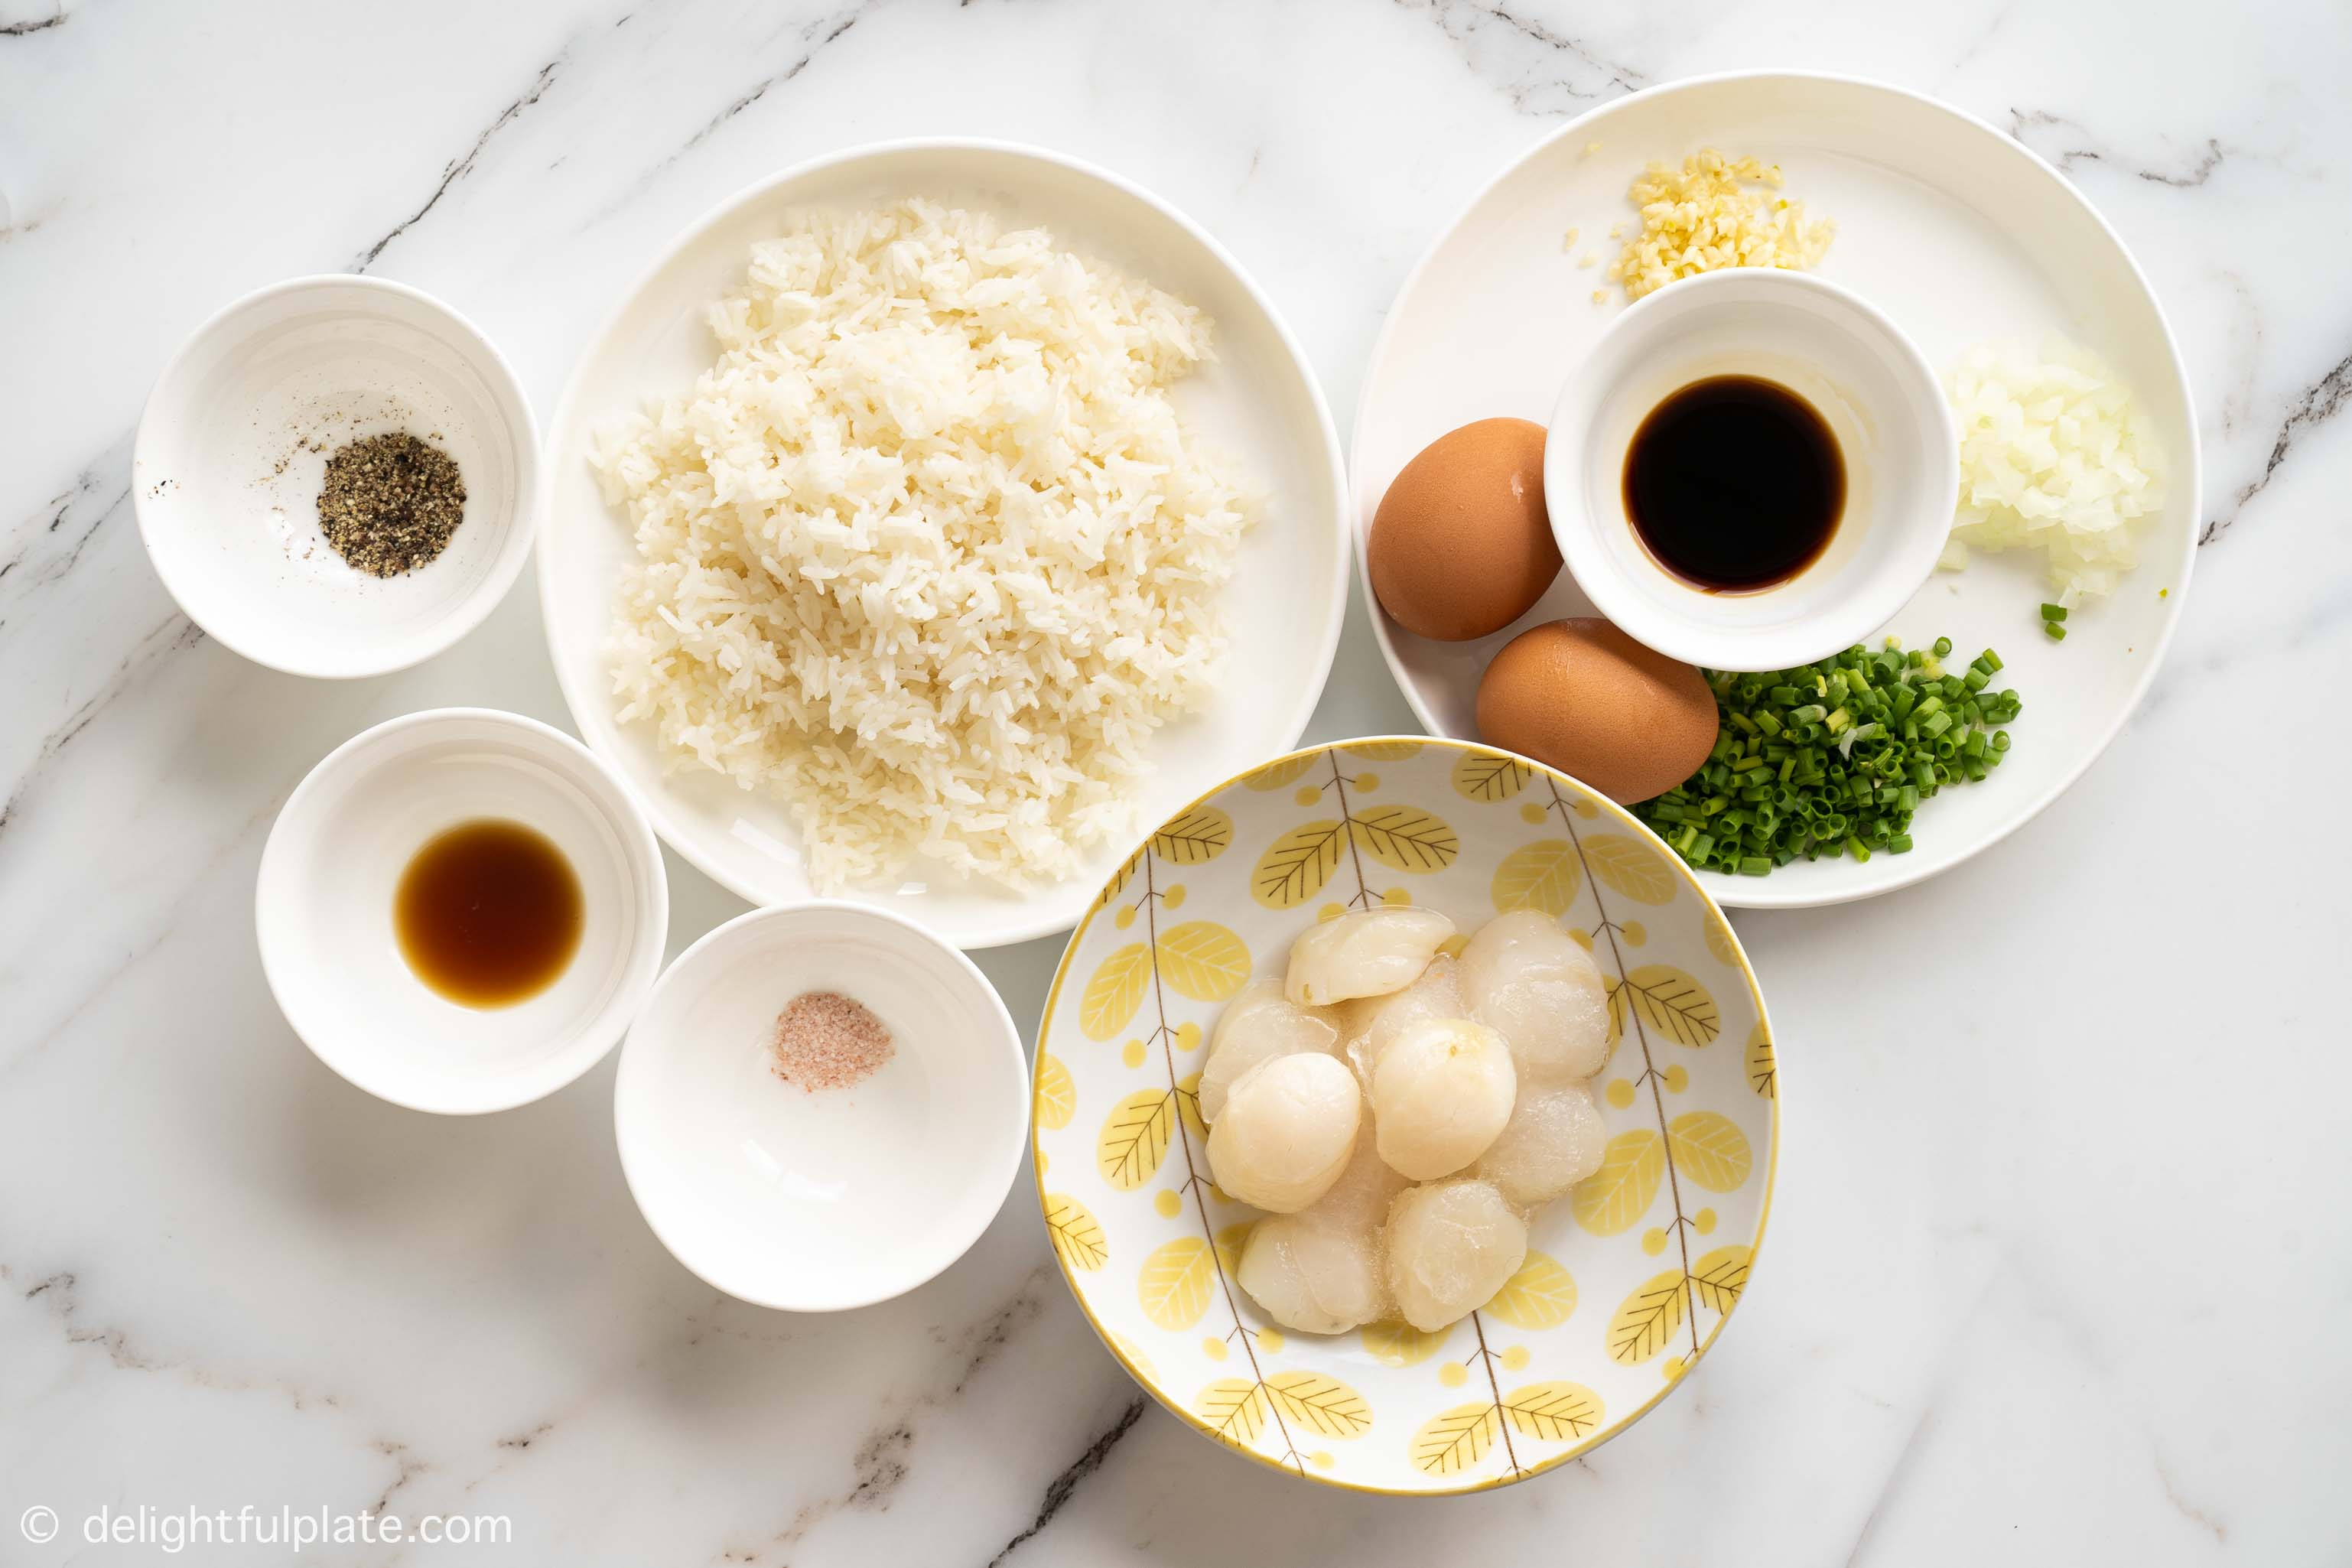 plates and bowls containing ingredients for scallop fried rice